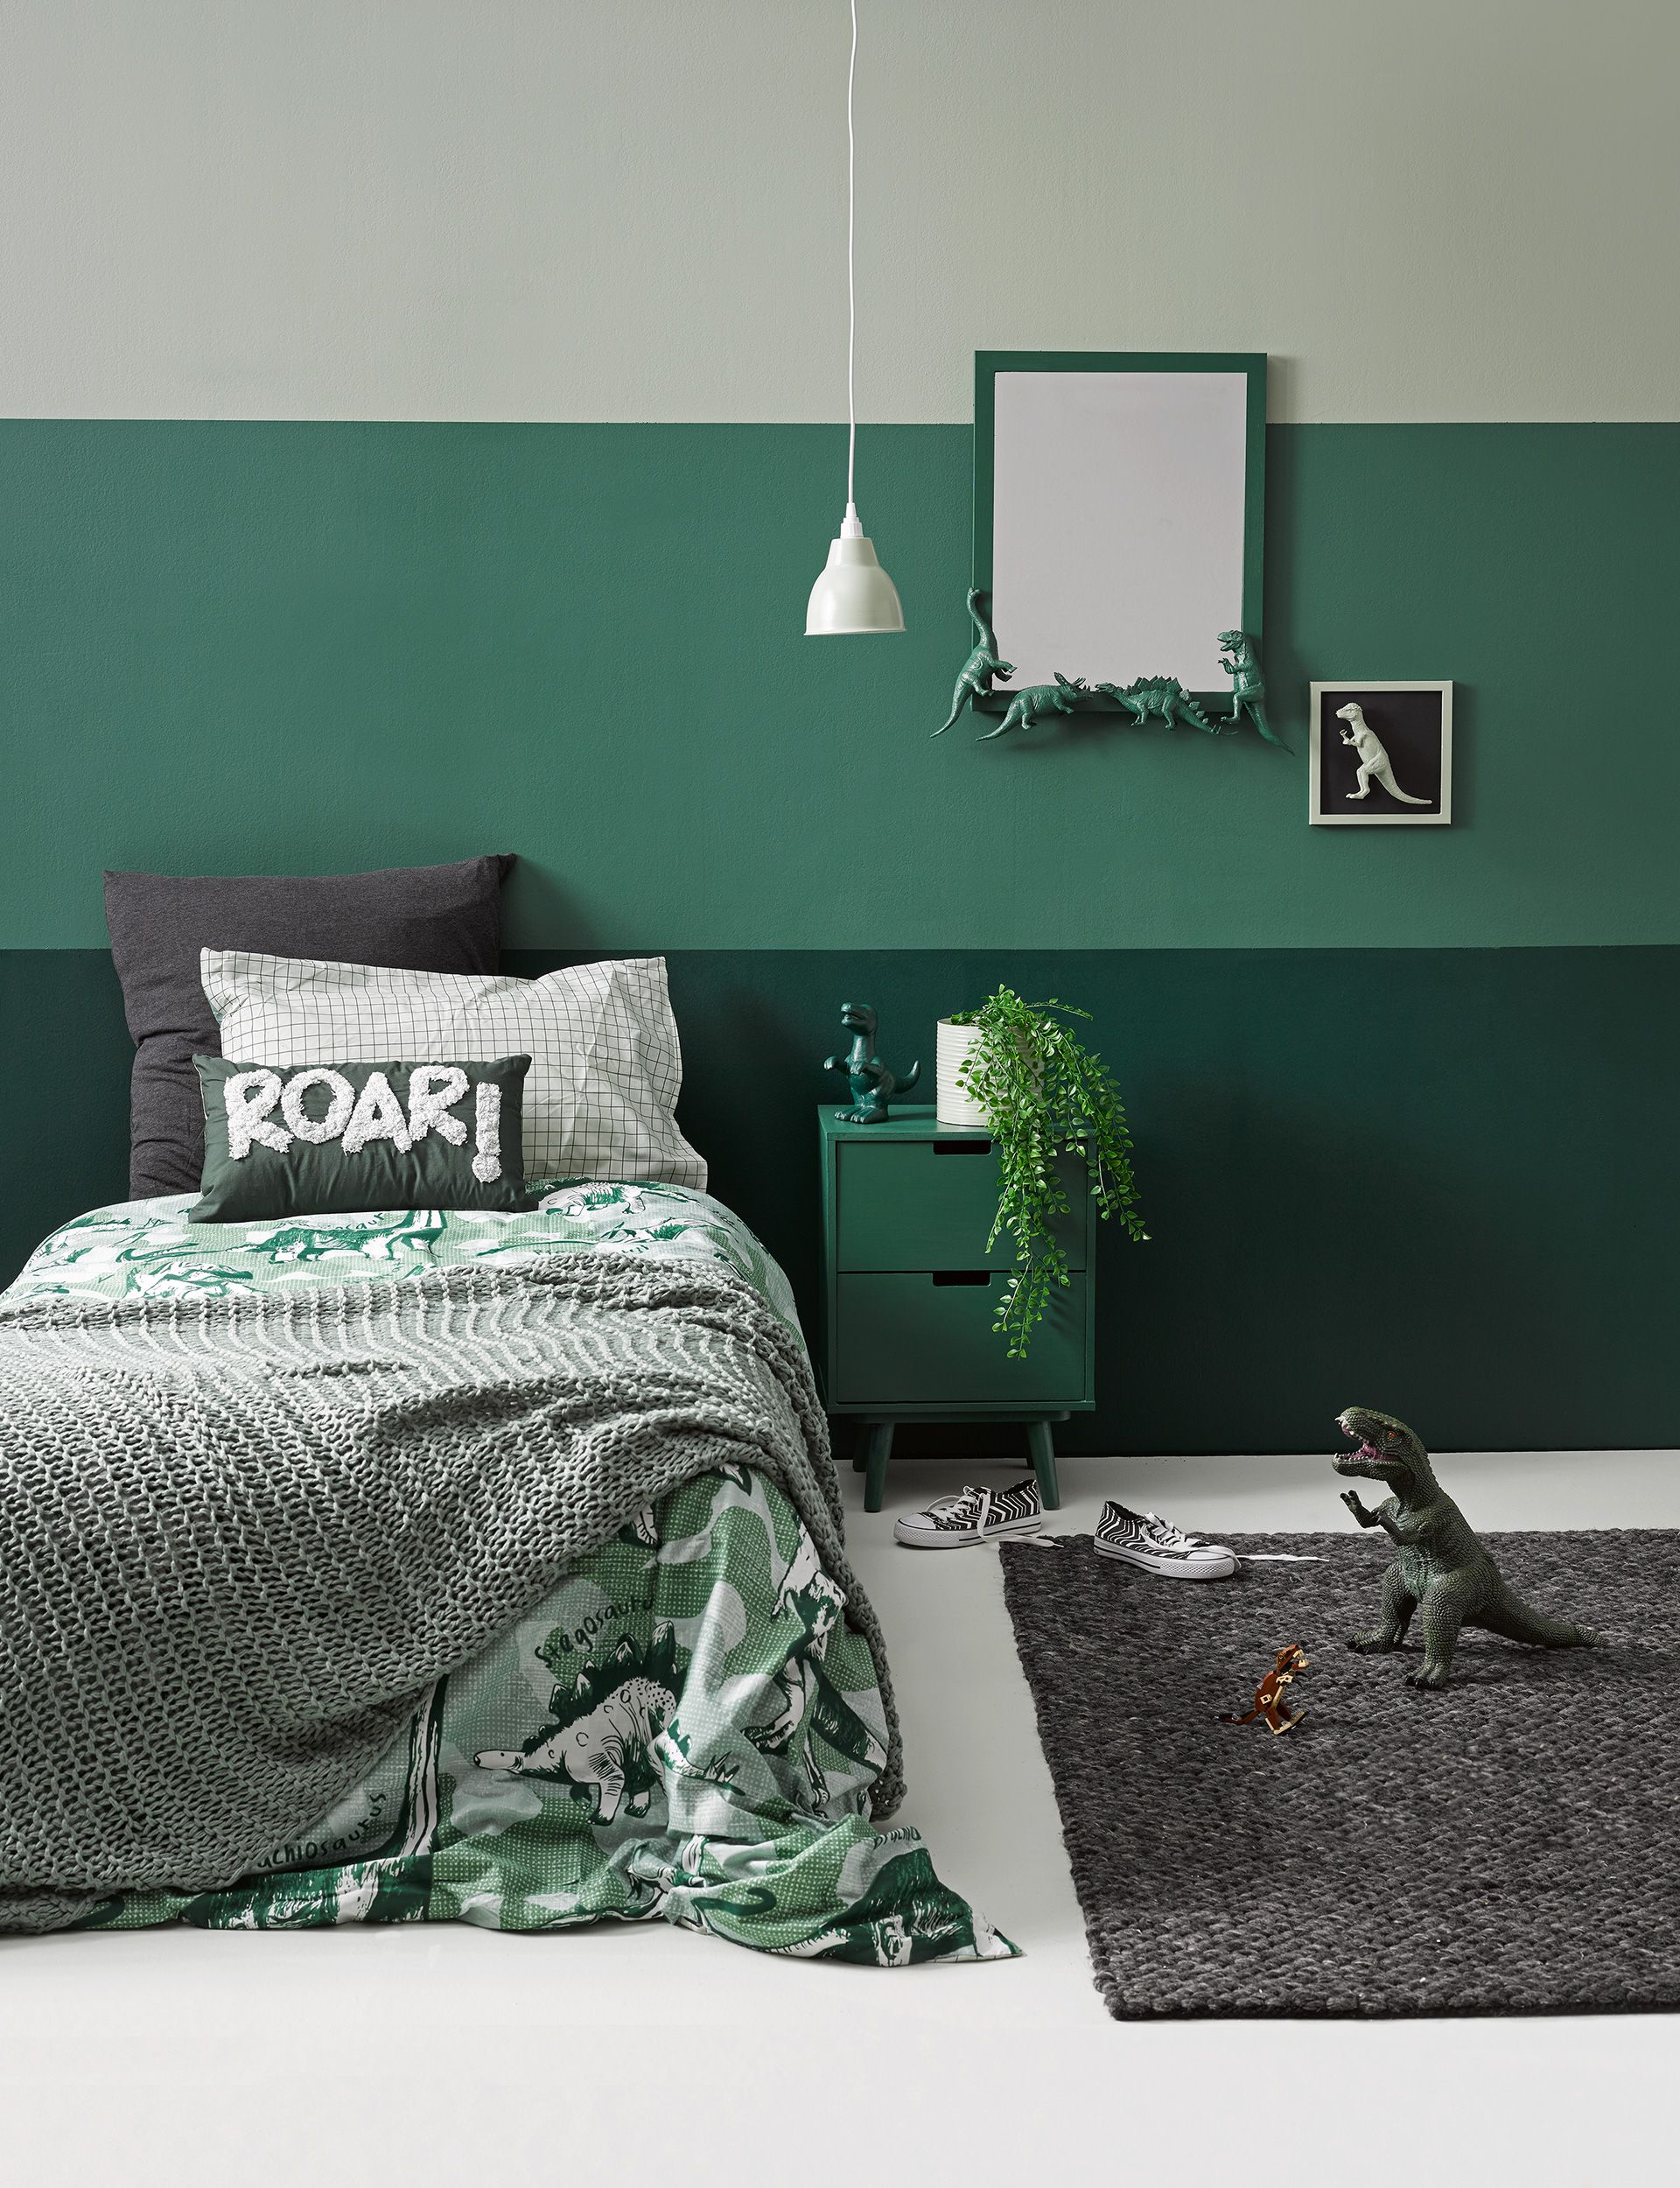 How to decorate your kid's bedroom with a DIY dinosaur theme #kidbedrooms